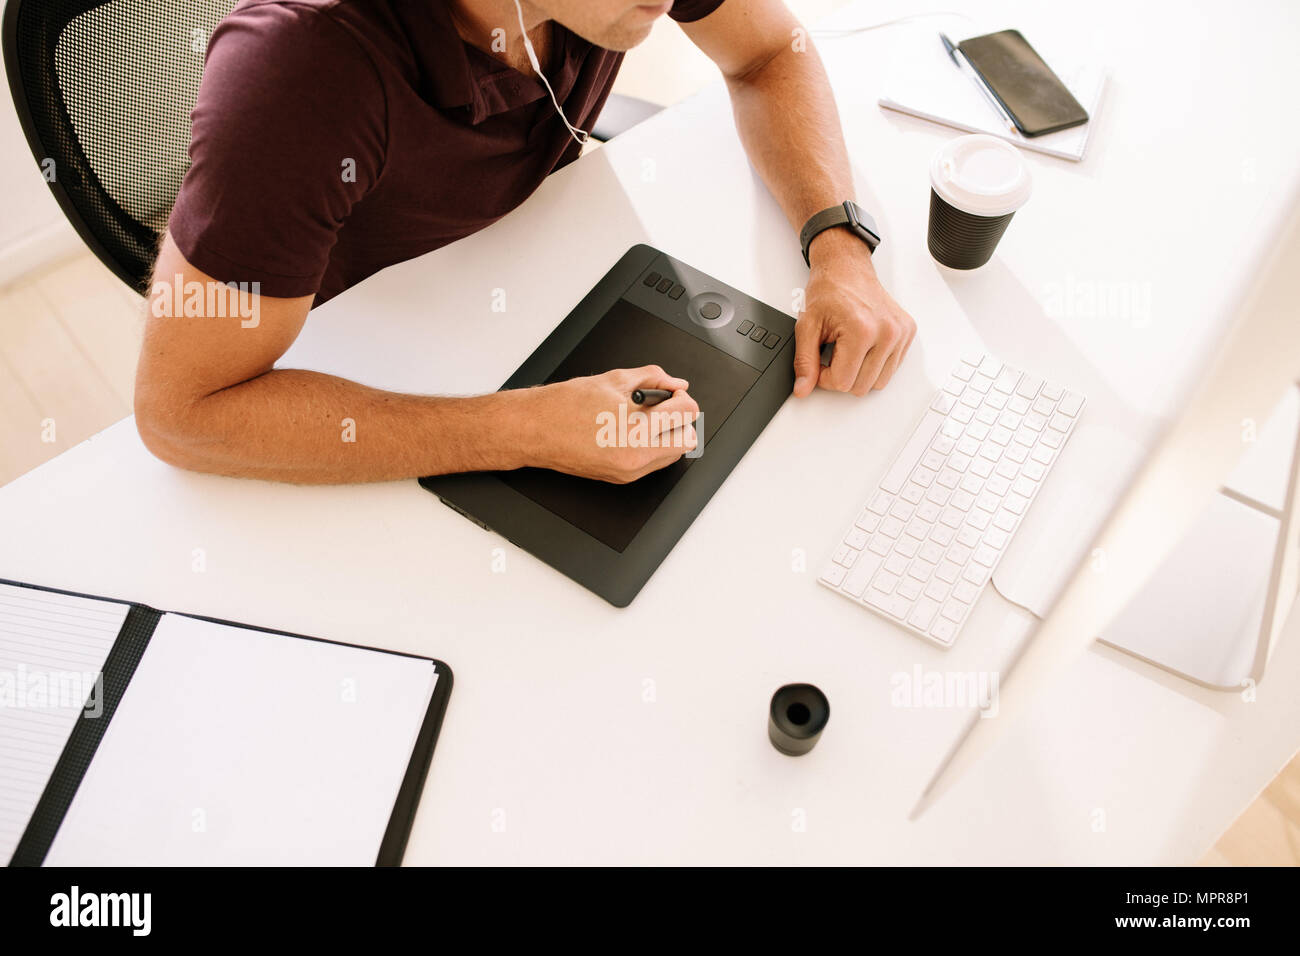 Businessman working on computer and using a digitizer to make notes. Man listening to audio while working on computer with a coffee glass on the table - Stock Image